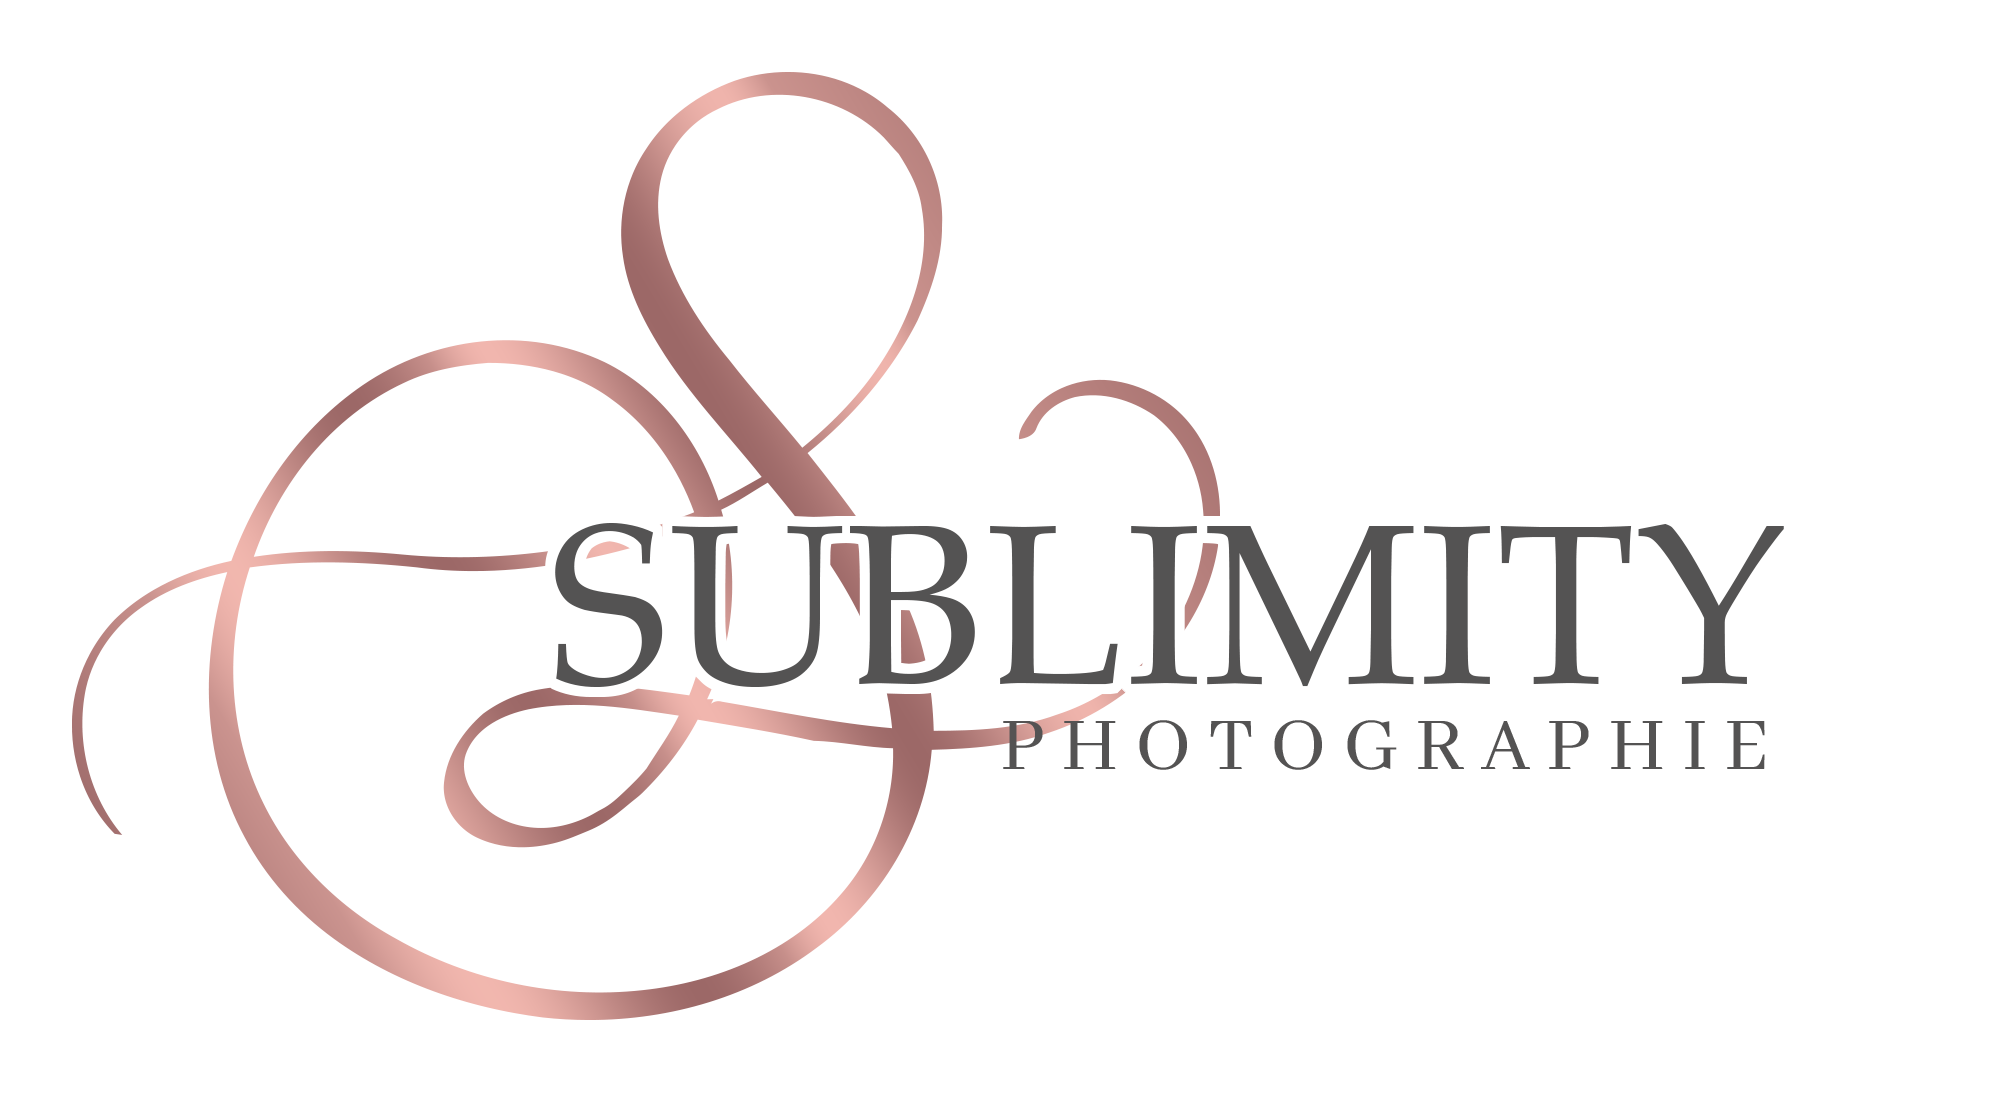 Sublimity Photographie